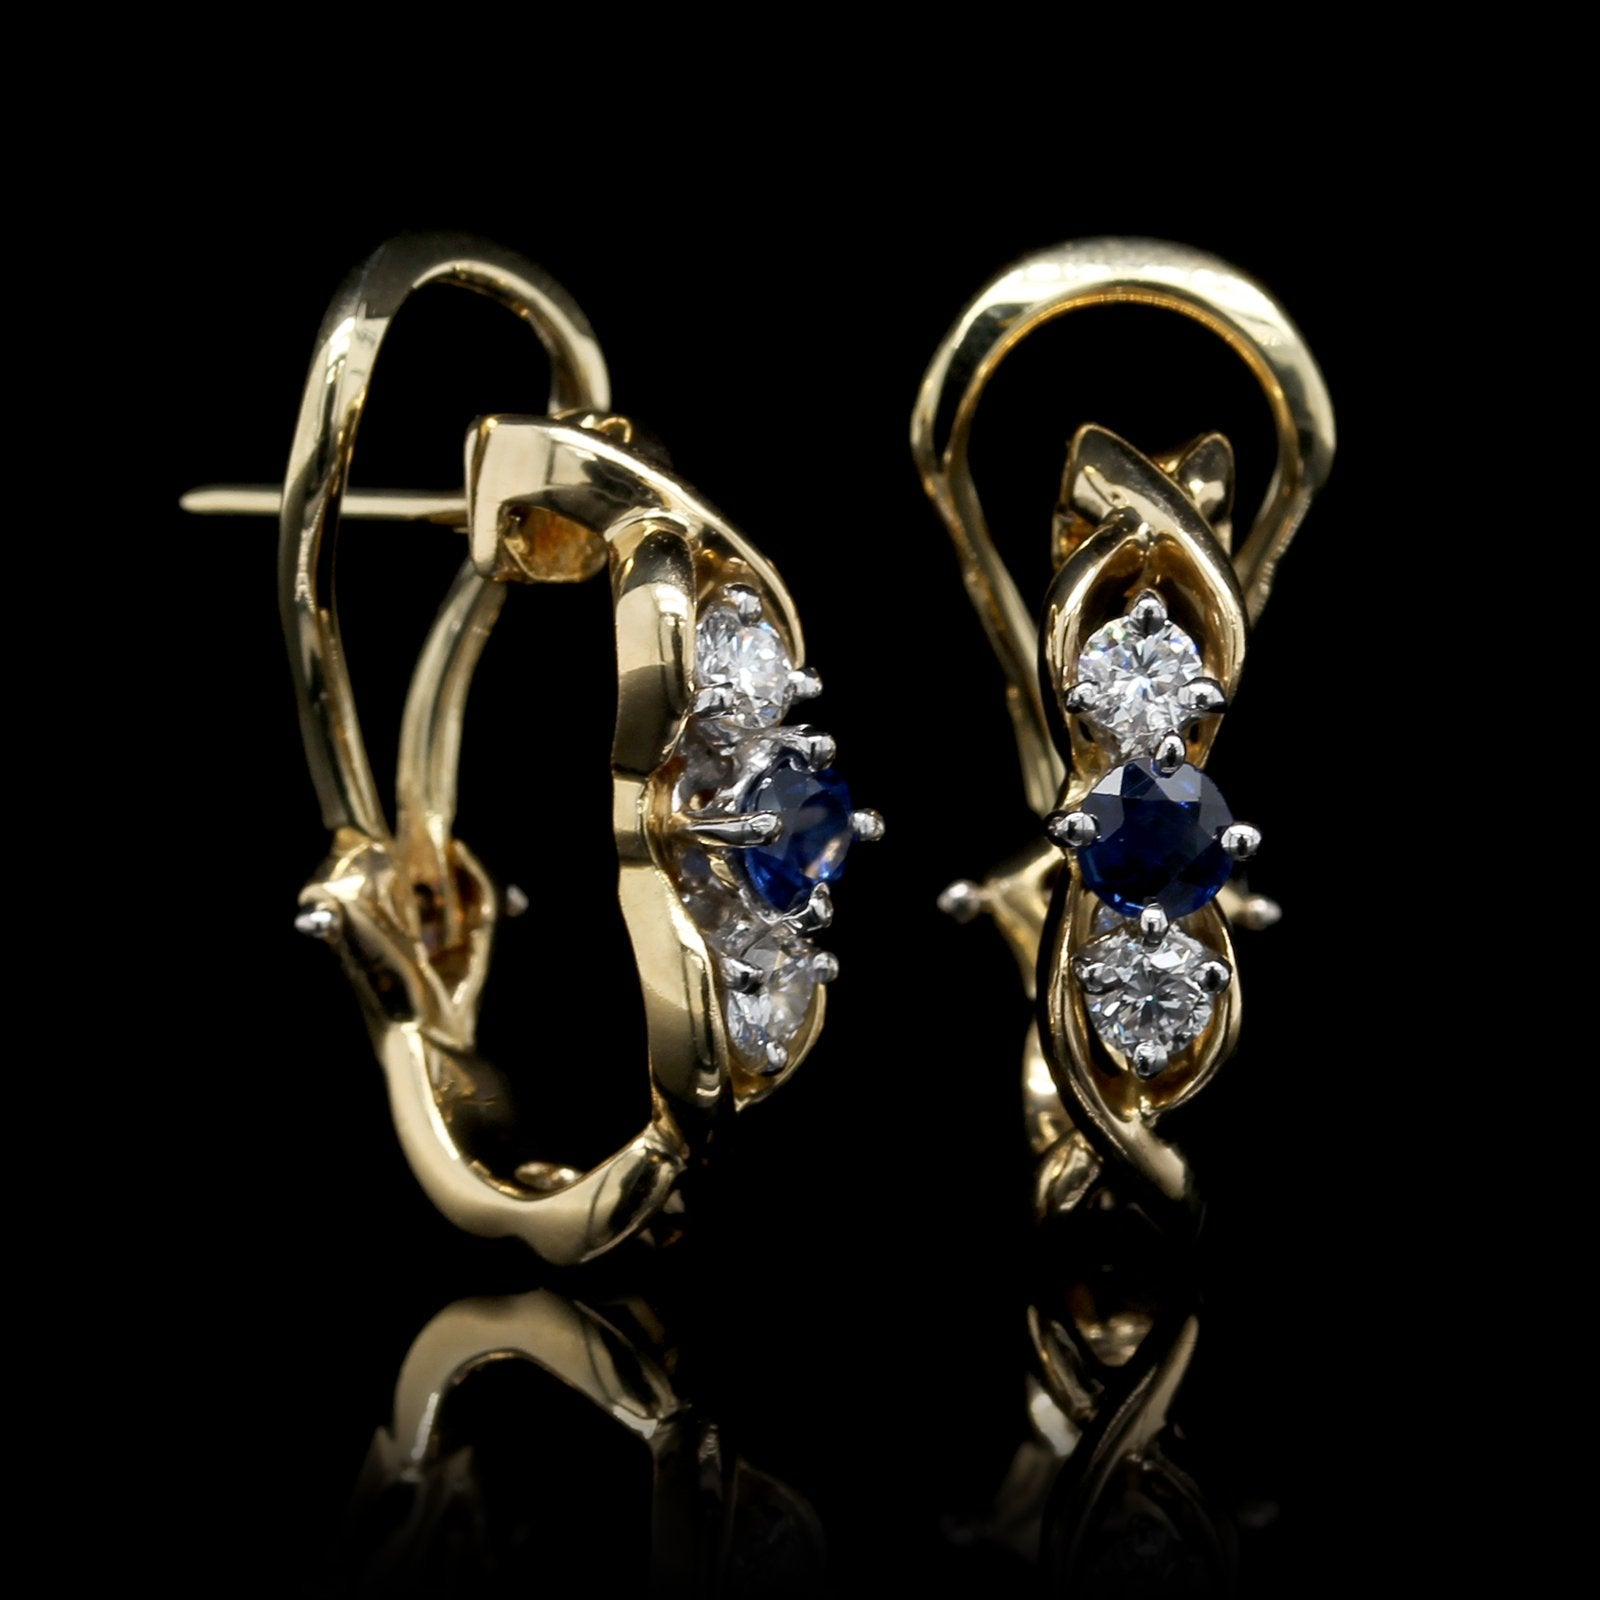 McTeigue 18K Yellow Gold and Platinum Estate Sapphire and Diamond Earrings